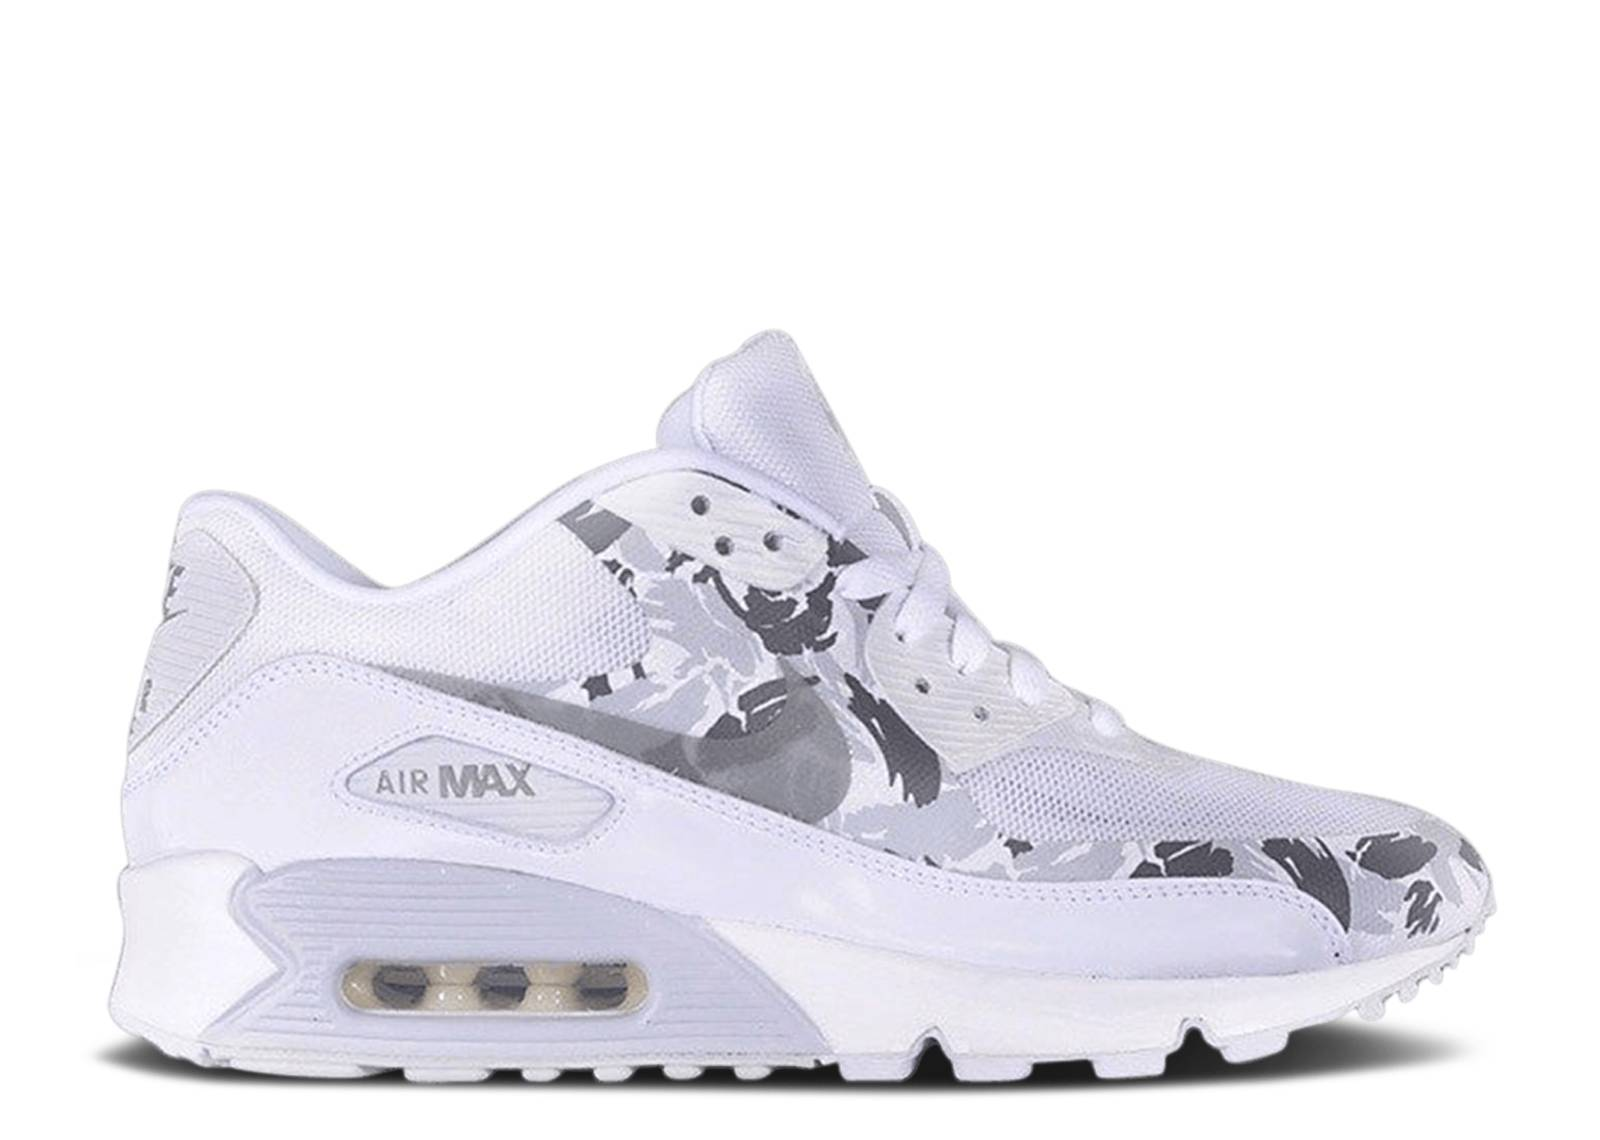 Popa Interconectar Te mejorarás  Air Max 90 Hyperfuse Premium 'Reflective Camo' - Nike - 532470 100 -  white/reflect silver-charcoal | Flight Club